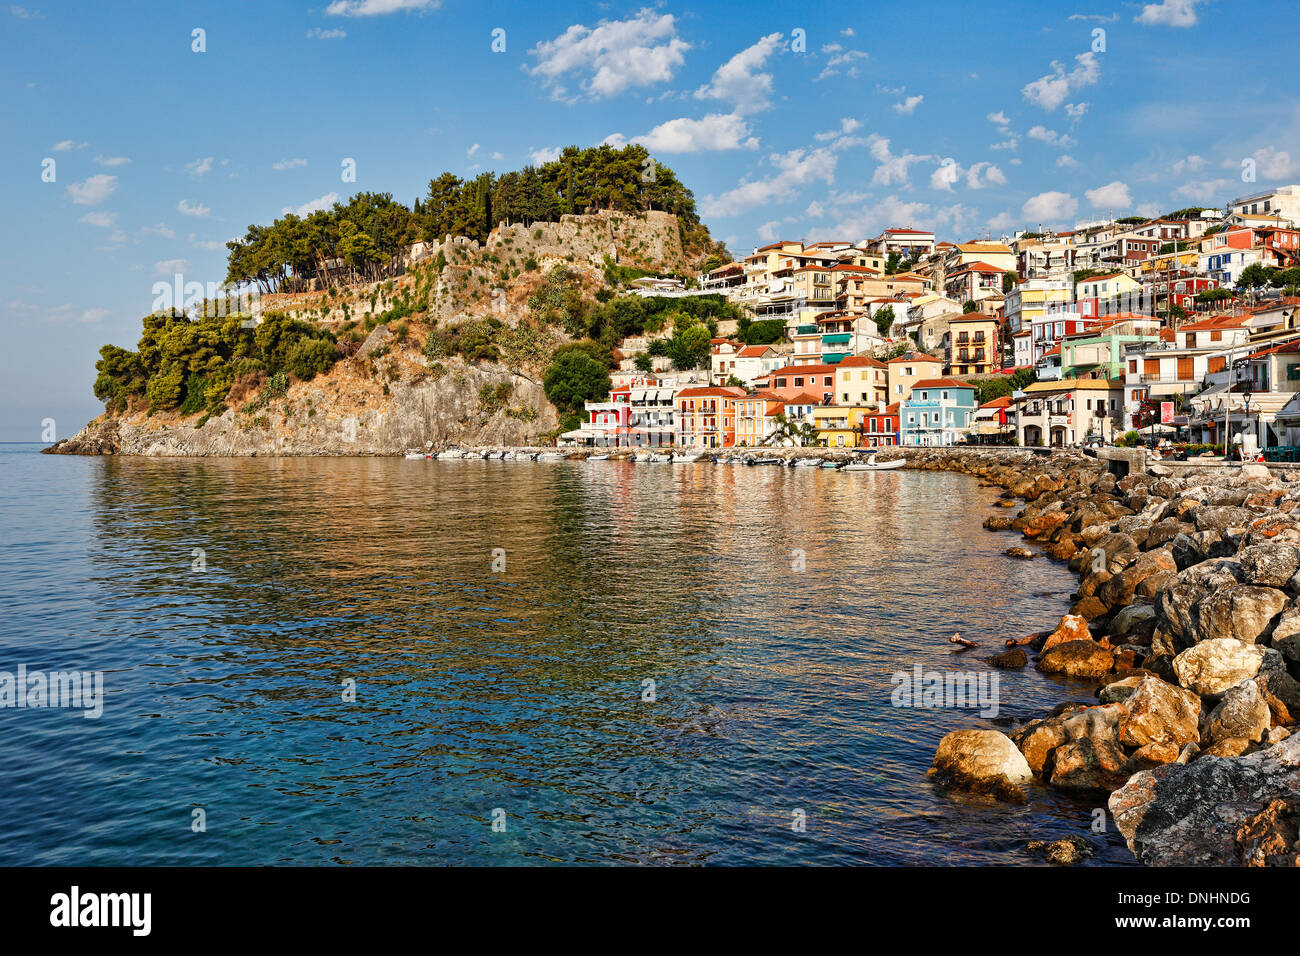 The bay with the colorful houses of Parga, Greece - Stock Image